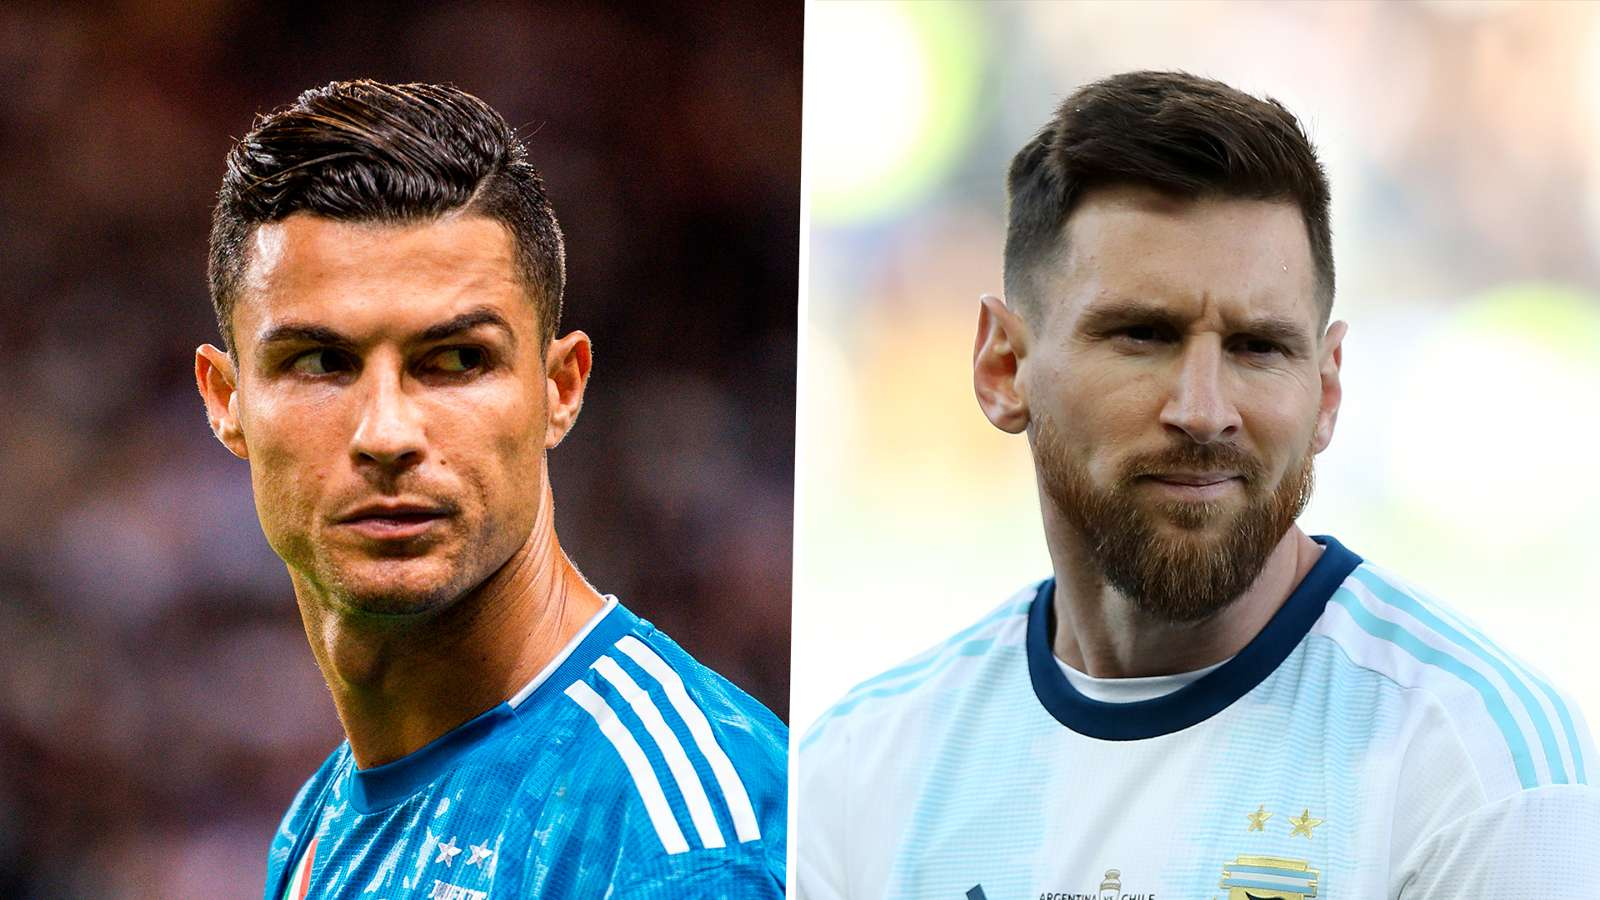 Messi and Ronaldo would struggle in this Manchester United team - Berbatov - Bóng Đá